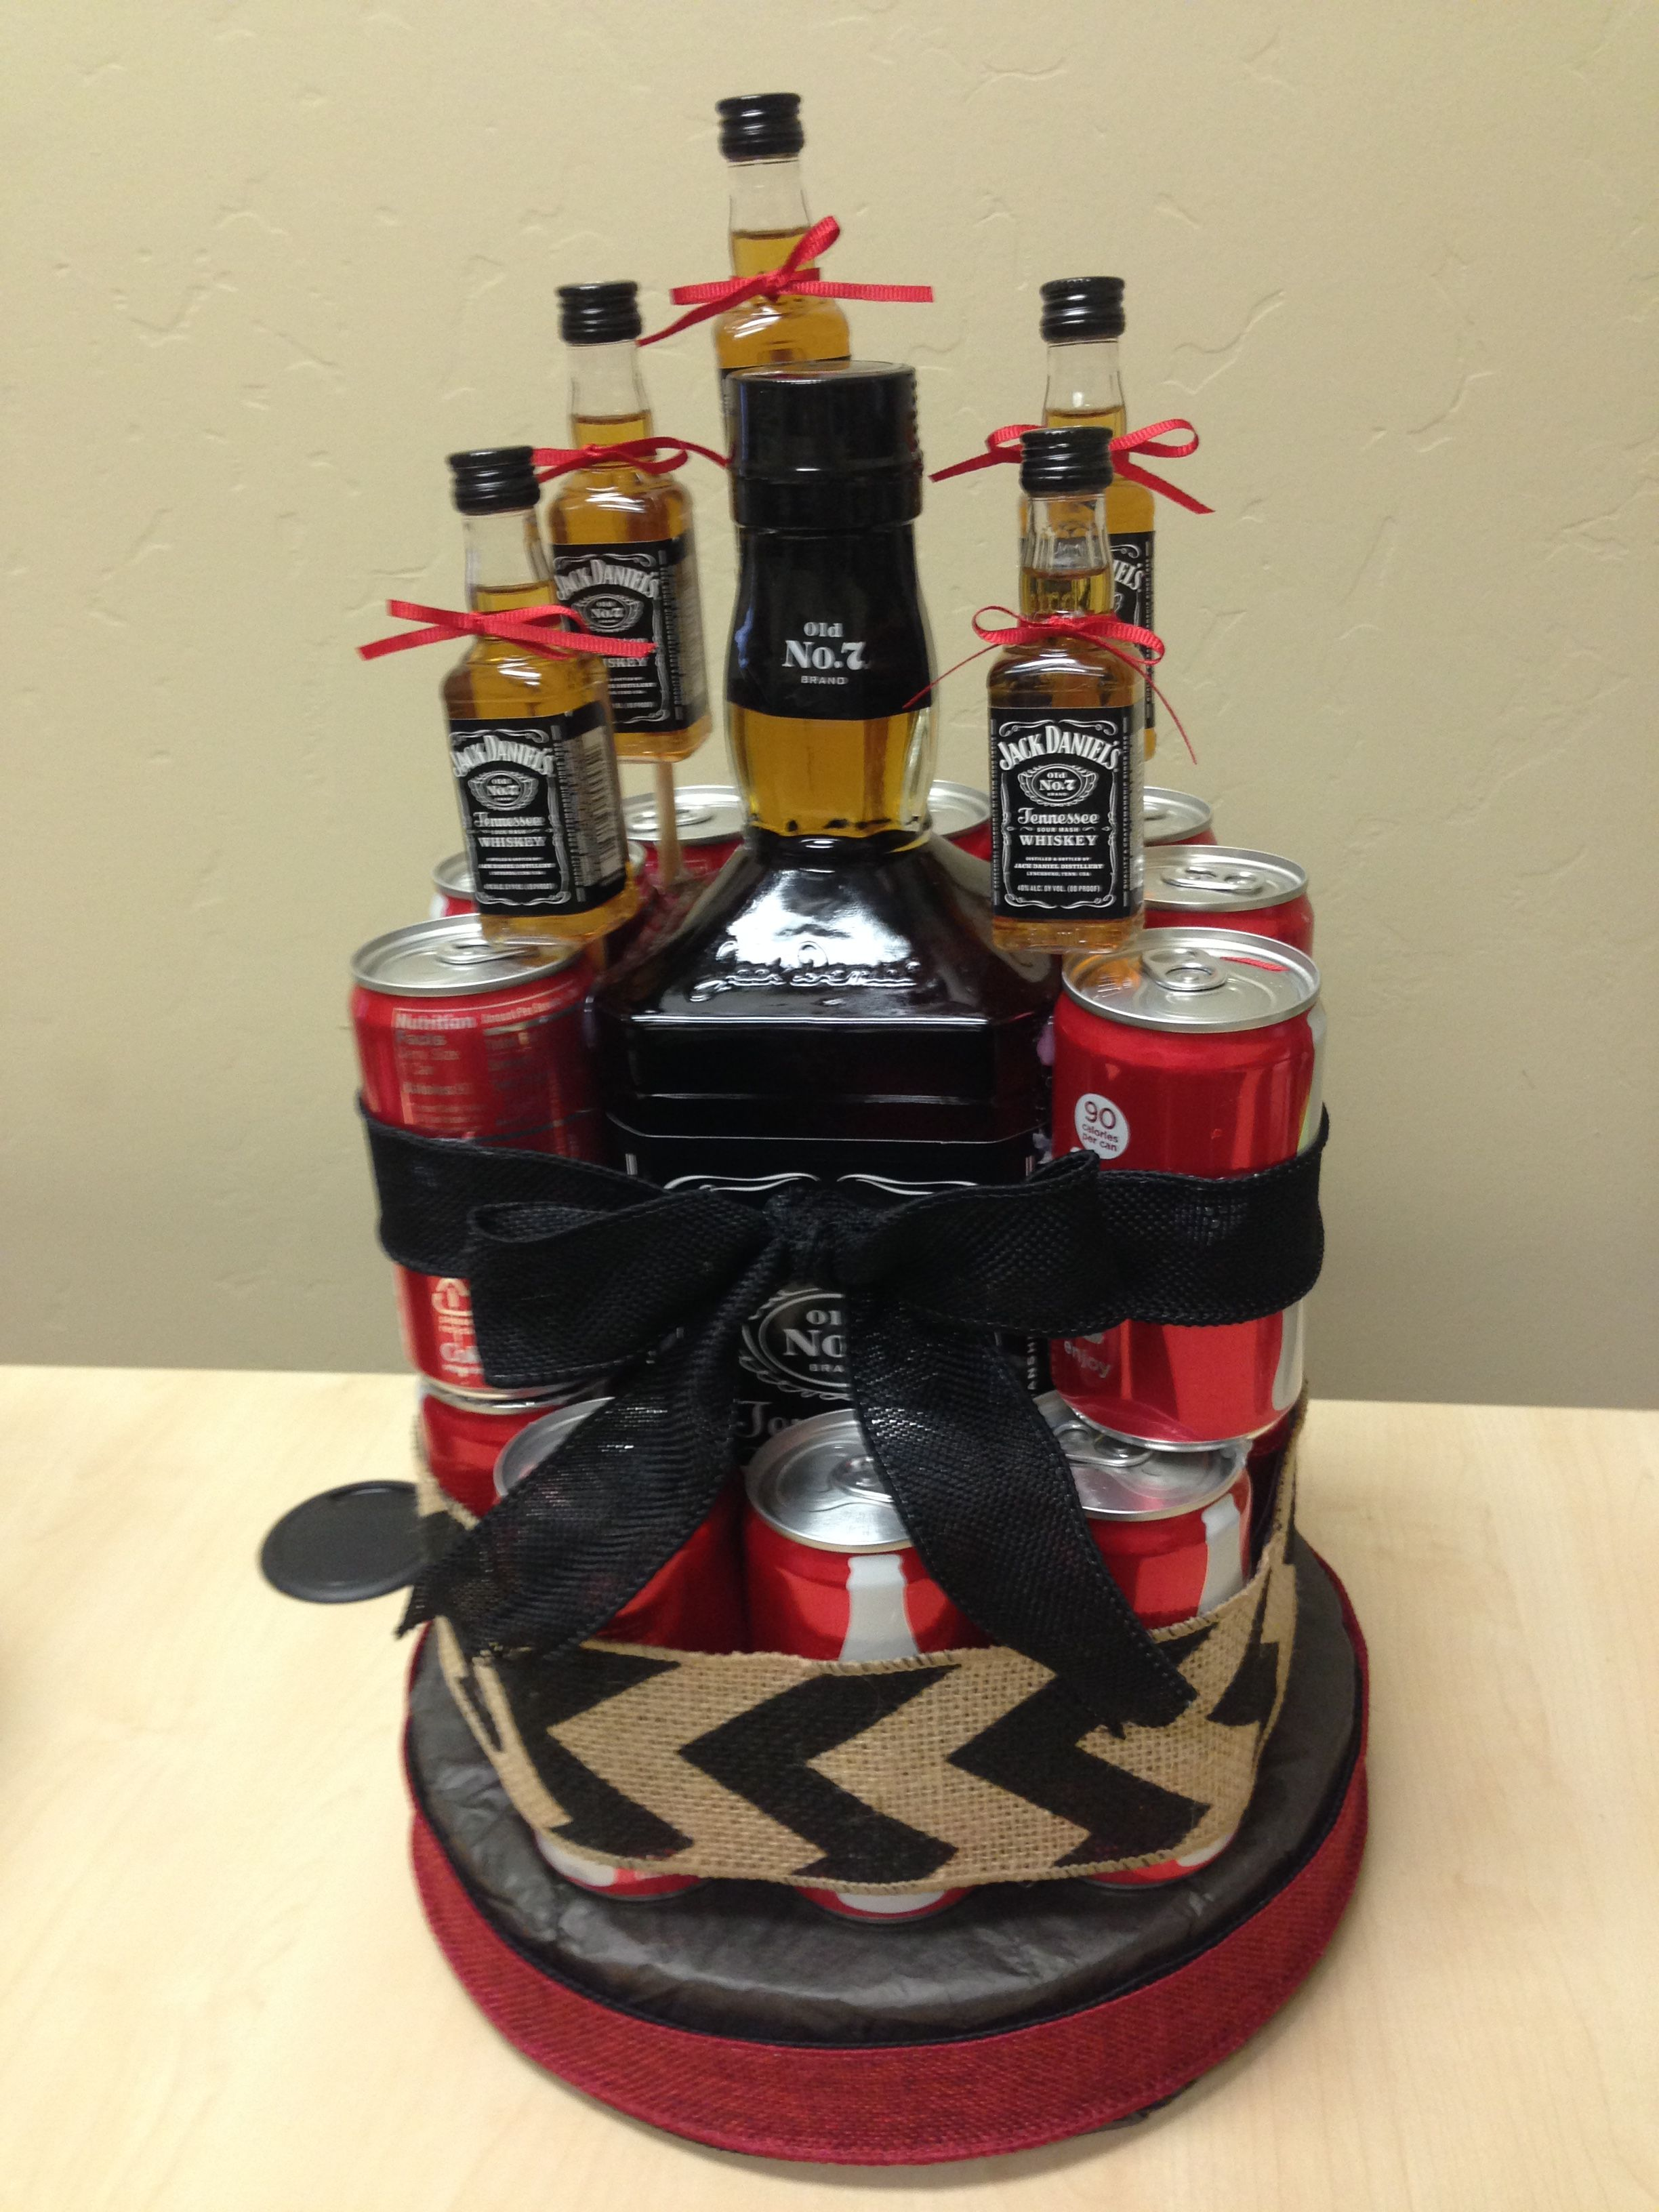 Jack and Coke birthday cake Liquor gifts, Liquor gift